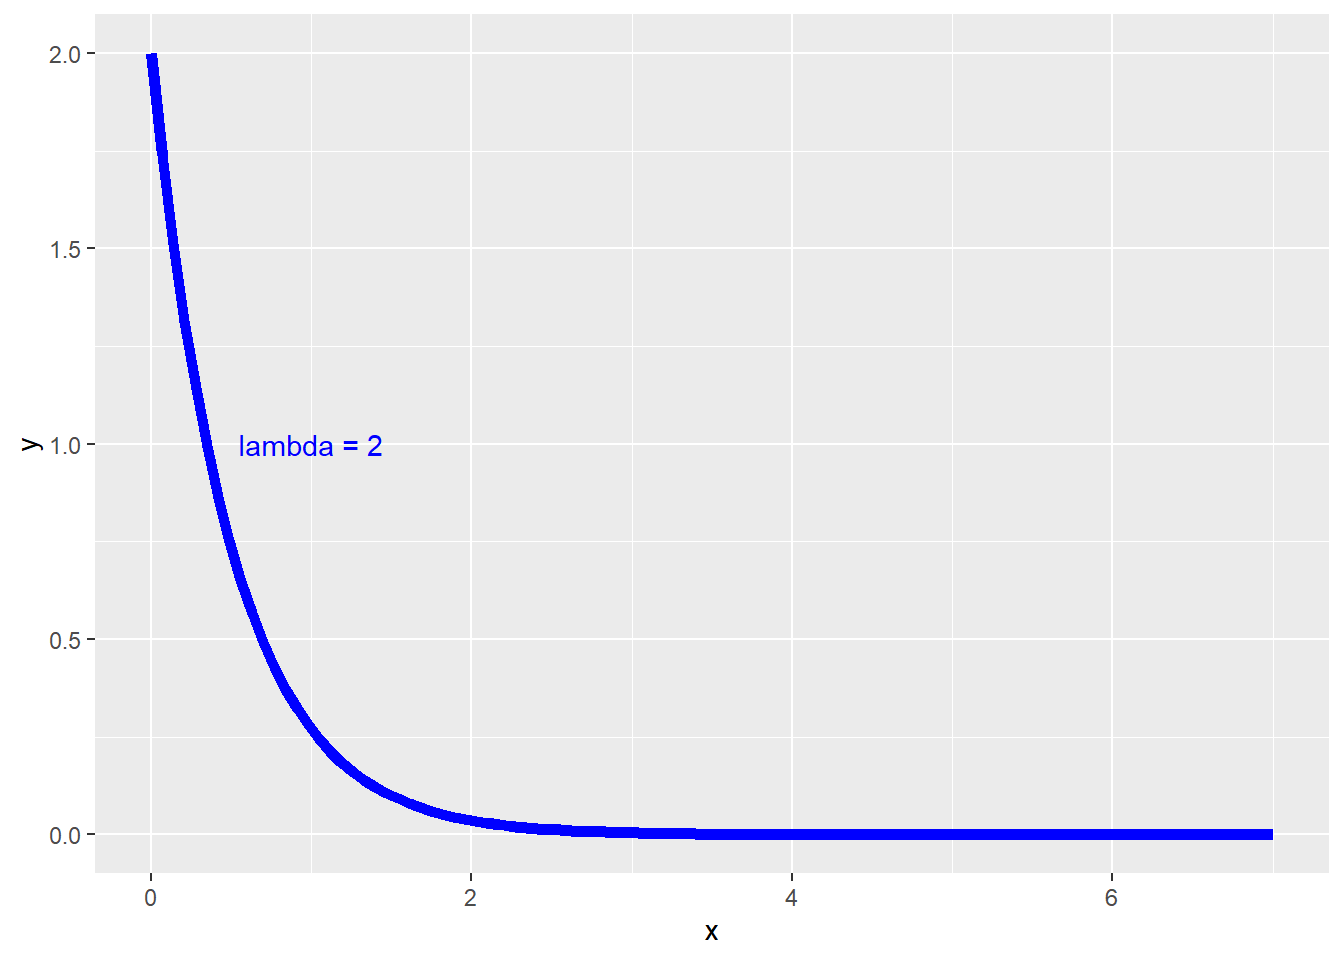 https://www.inf.ufsc.br/~andre.zibetti/probabilidade/figures/exponencial-Rstudio-3-1.png